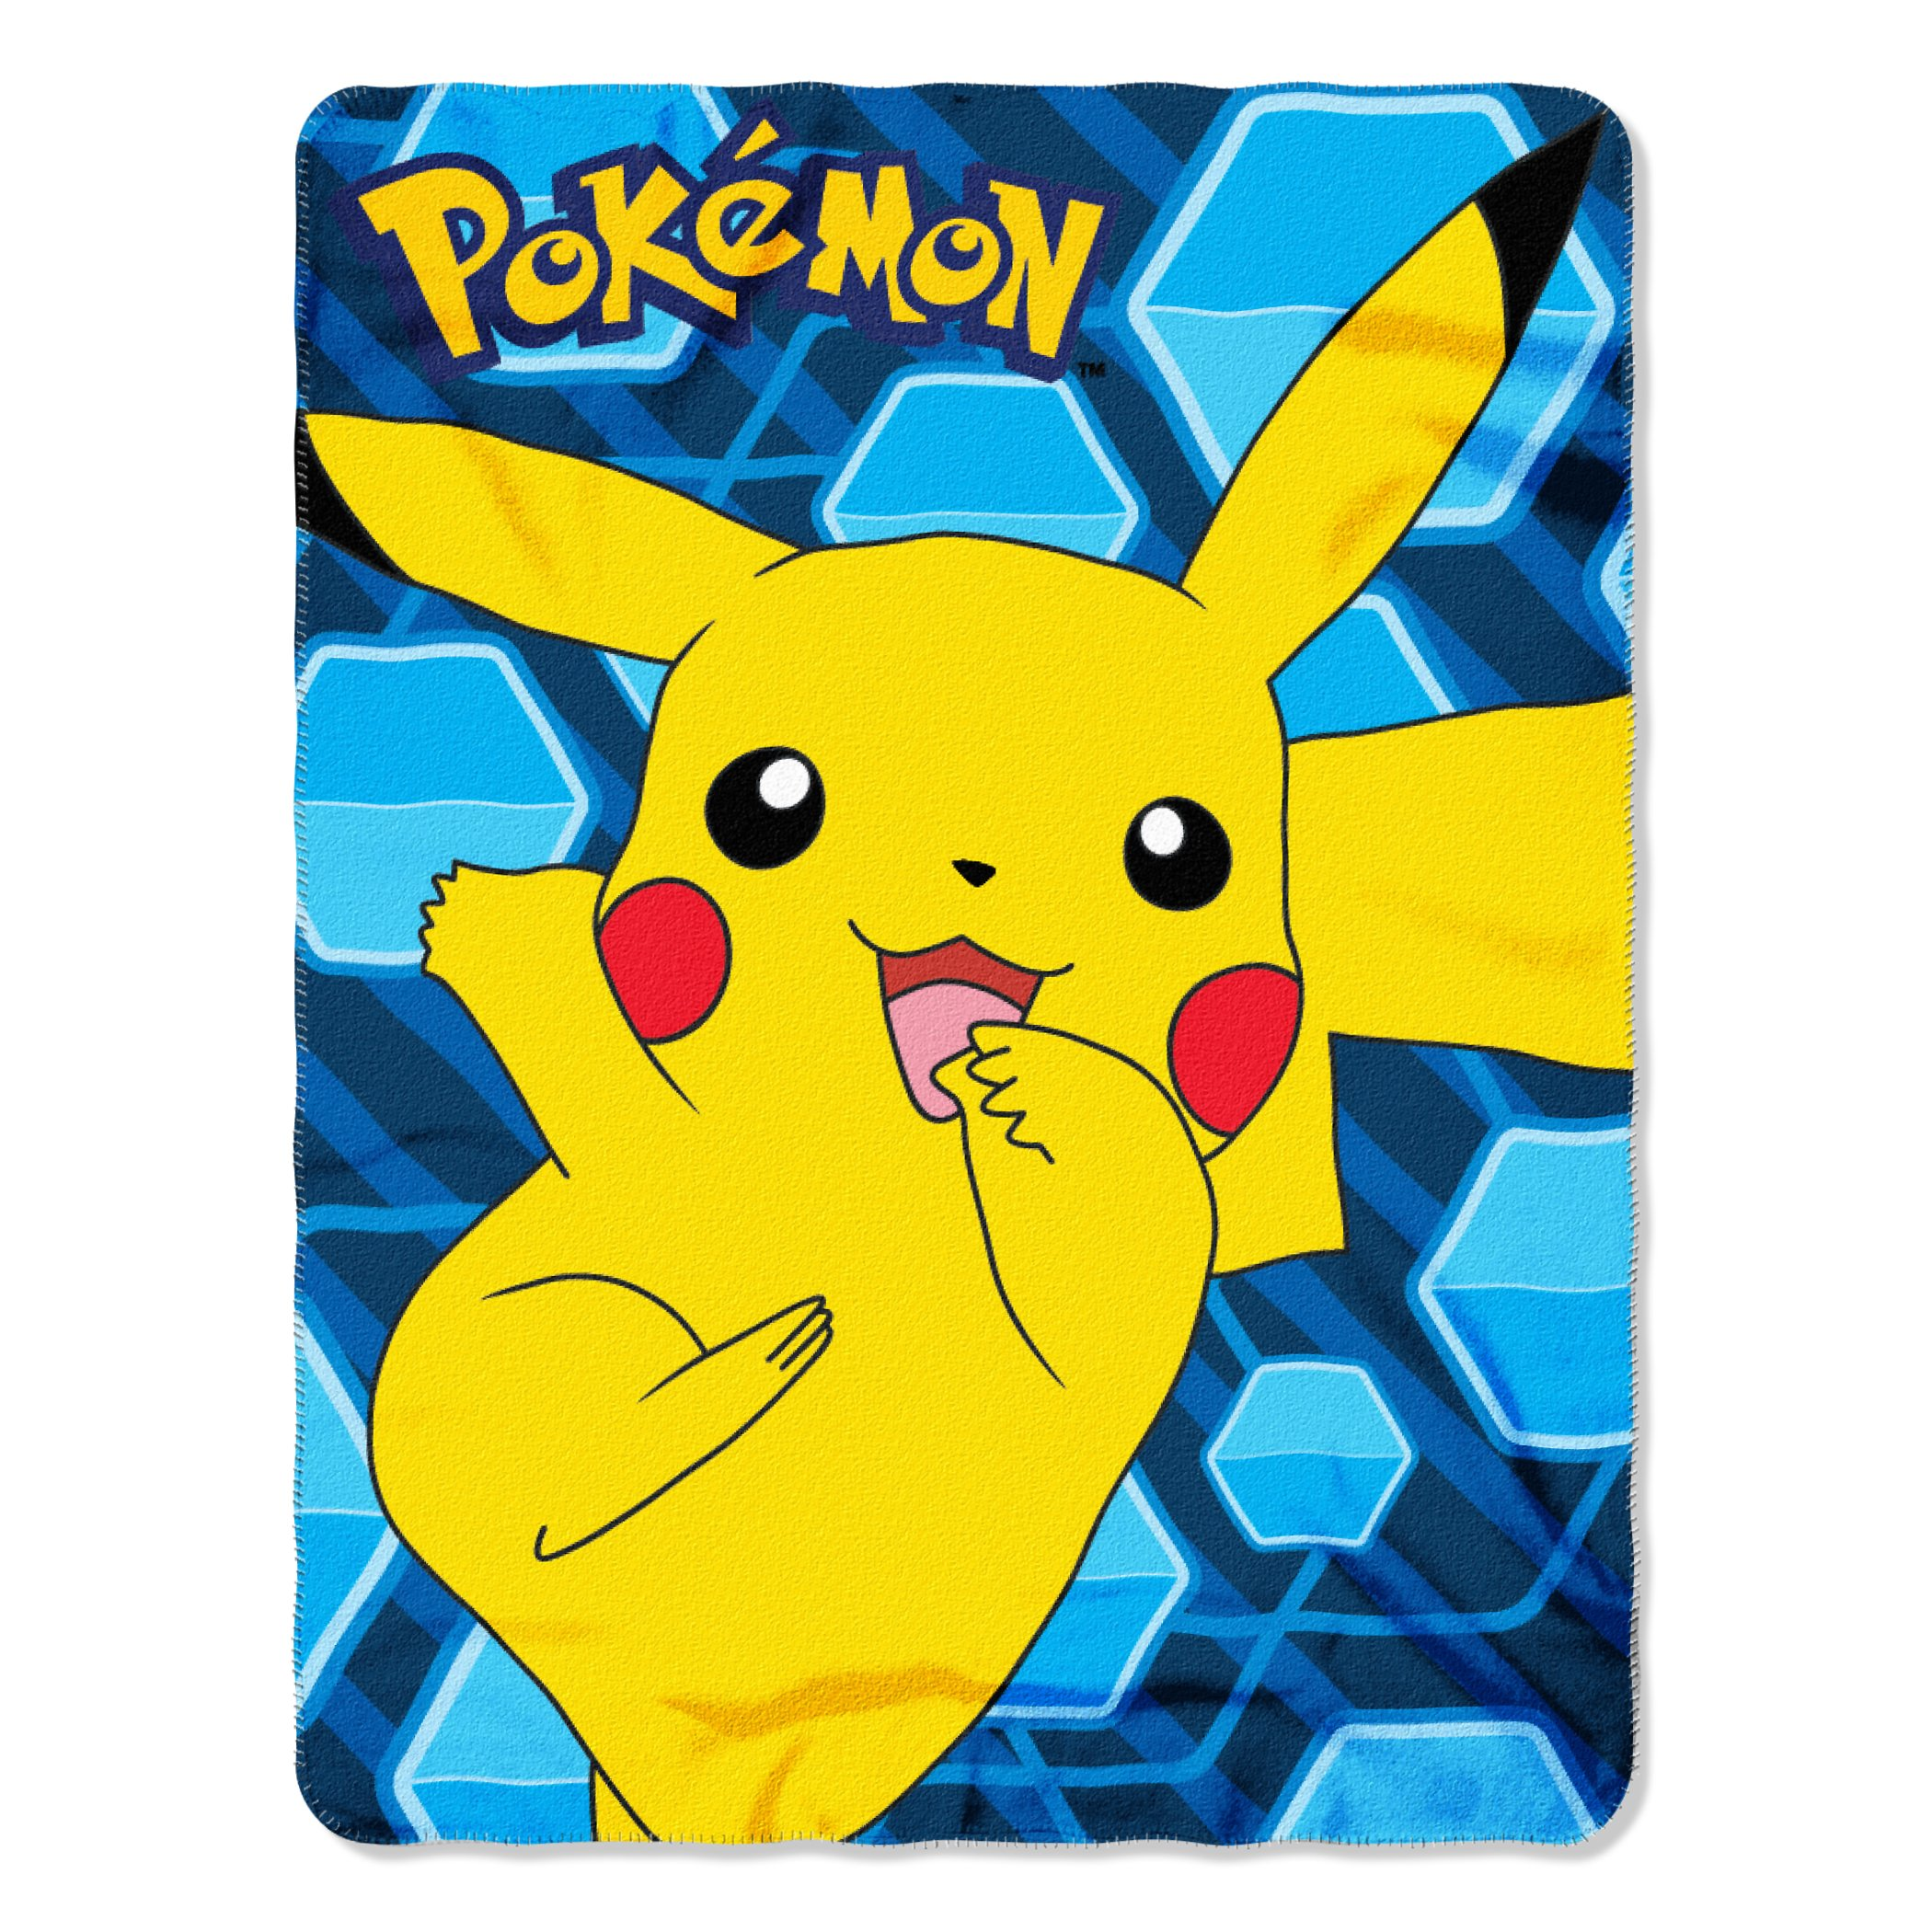 The Northwest Company Pokémon Pikachu Fleece Throw Blanket, 45 x 60-inches by The Northwest Company (Image #1)